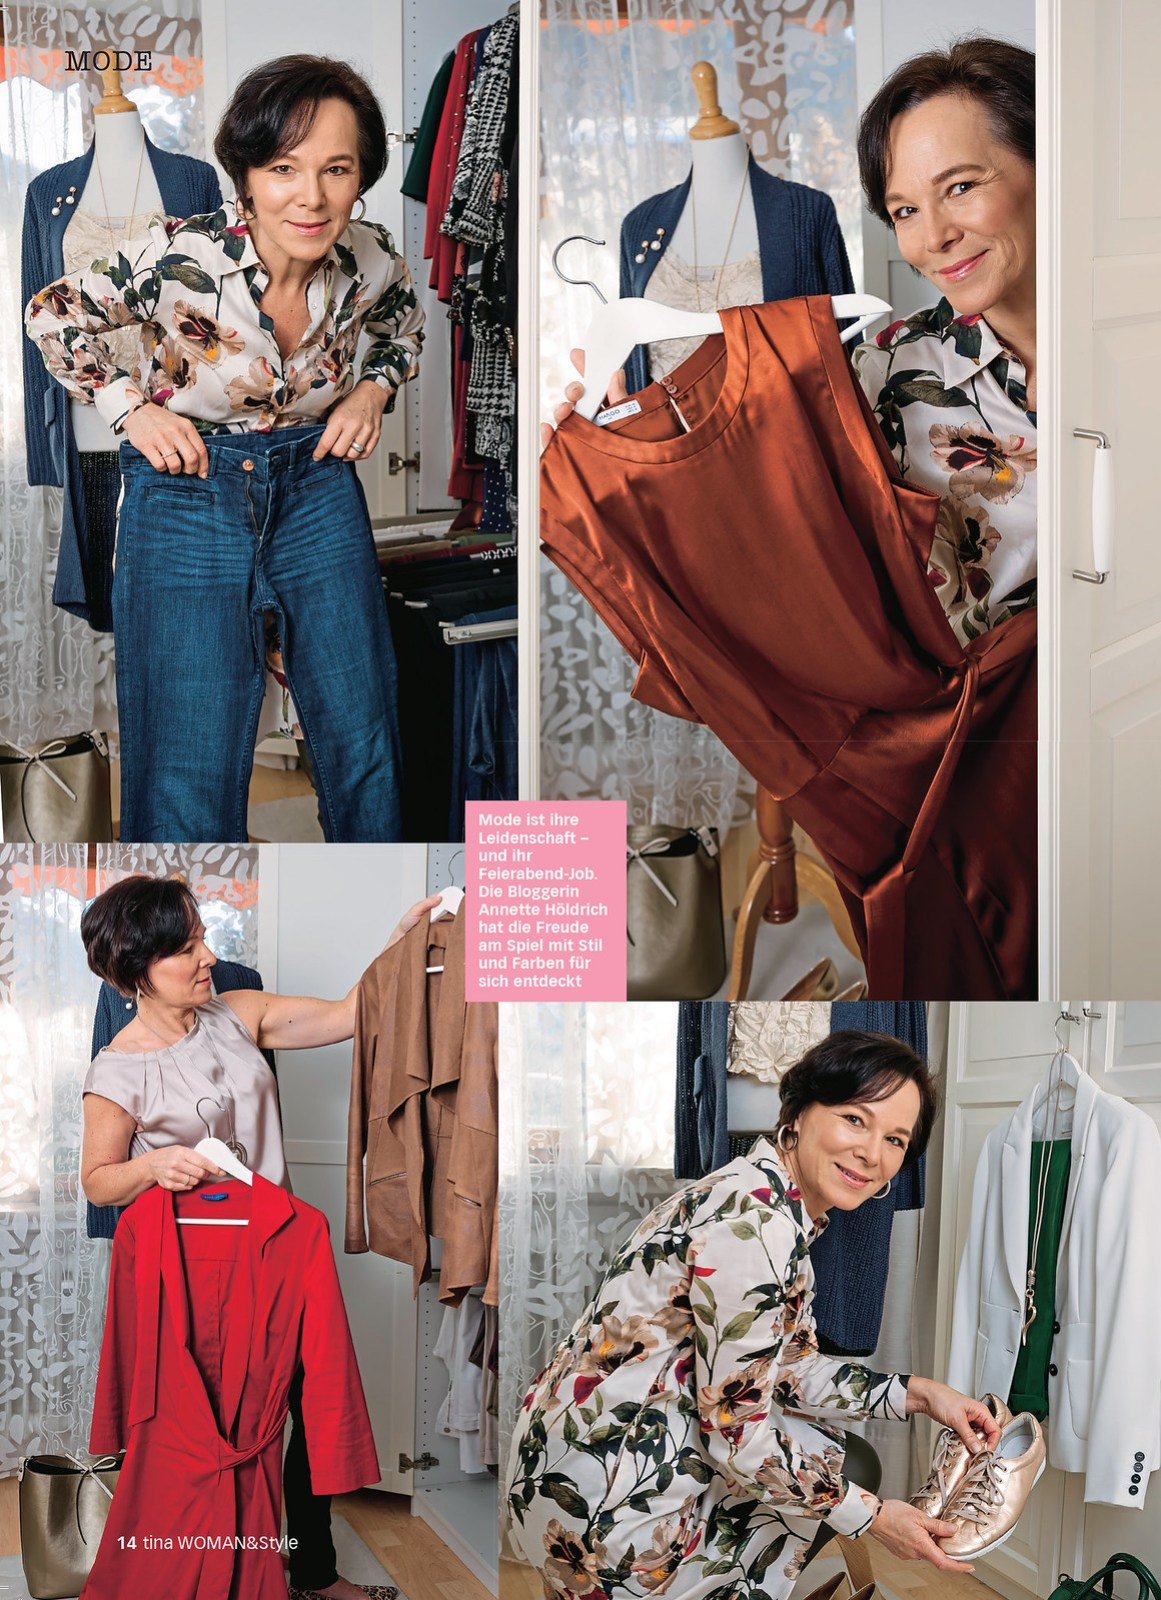 tina Woman and Style Interview LadyofStyle 3